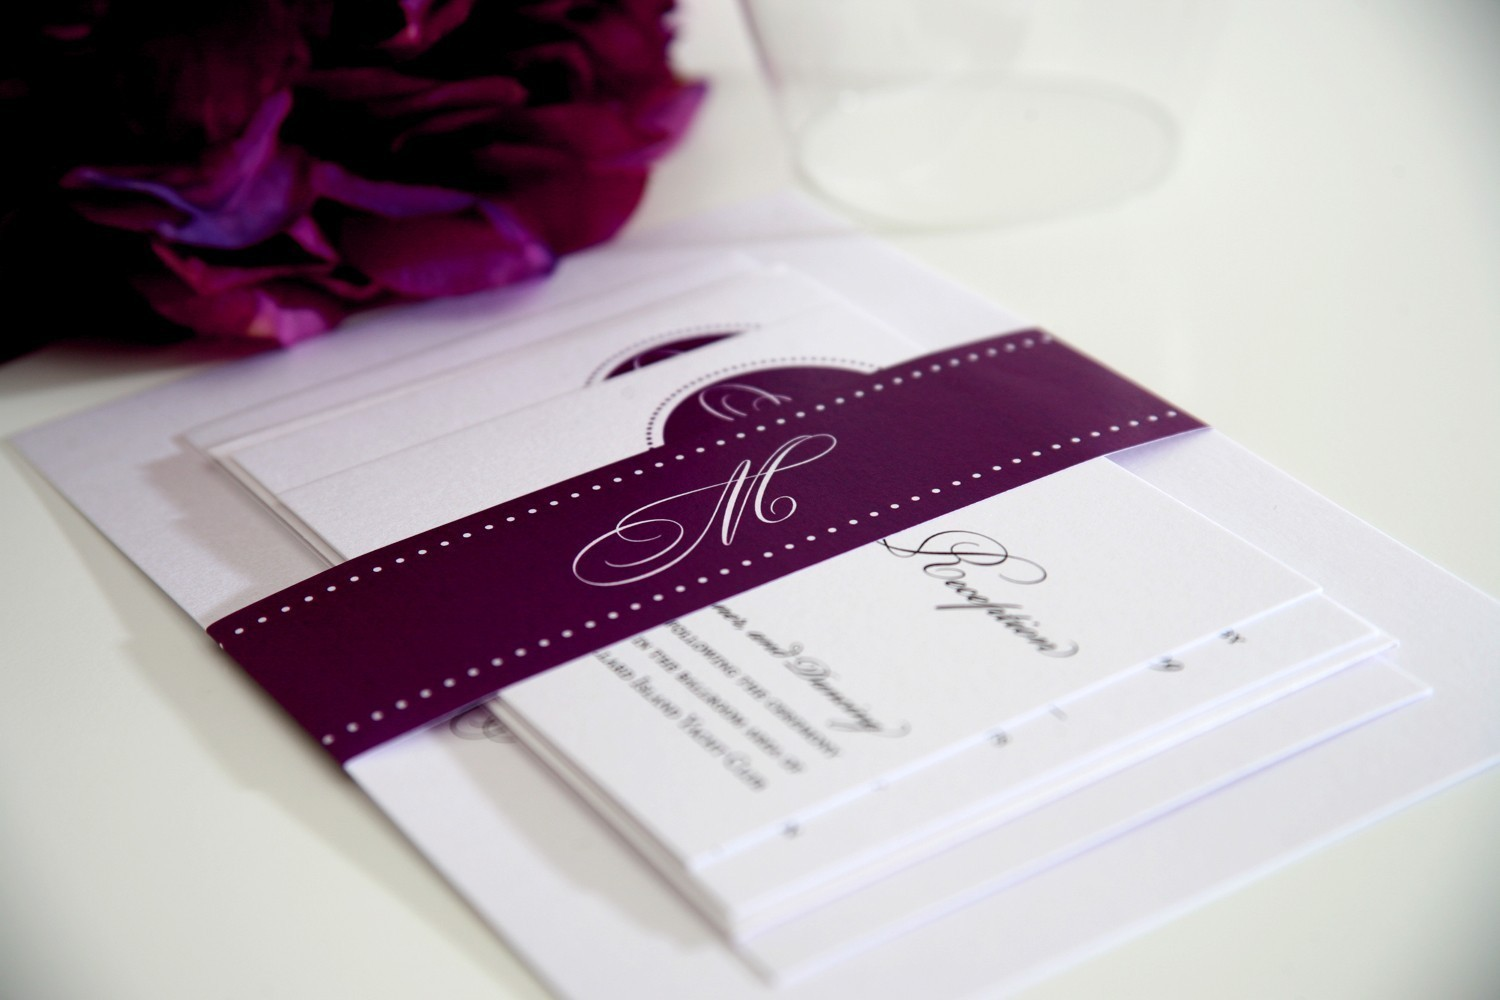 Cheap wedding invitations wedding ideas cheap wedding invitations solutioingenieria Gallery